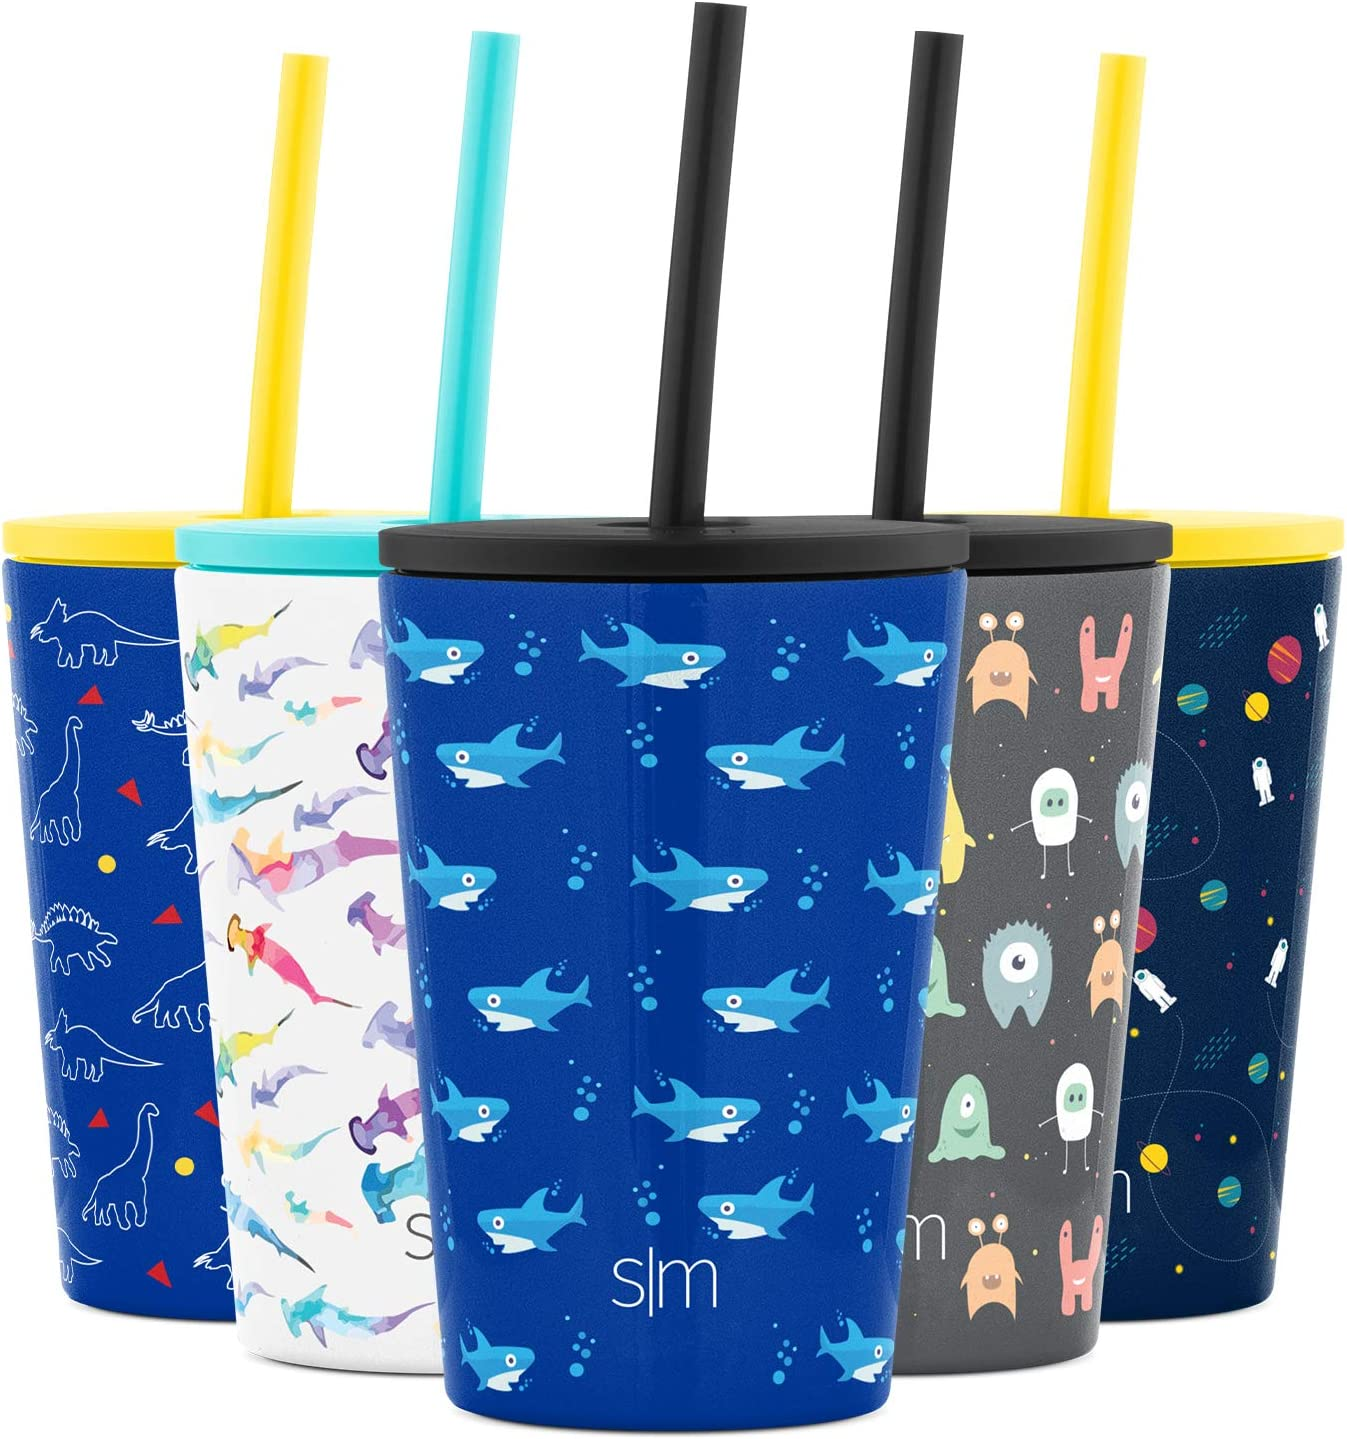 Simple Modern Kids Cup 12oz Classic Tumbler with Lid and Silicone Straw - Vacuum Insulated Stainless Steel for Toddlers Girls Boys Shark Bite